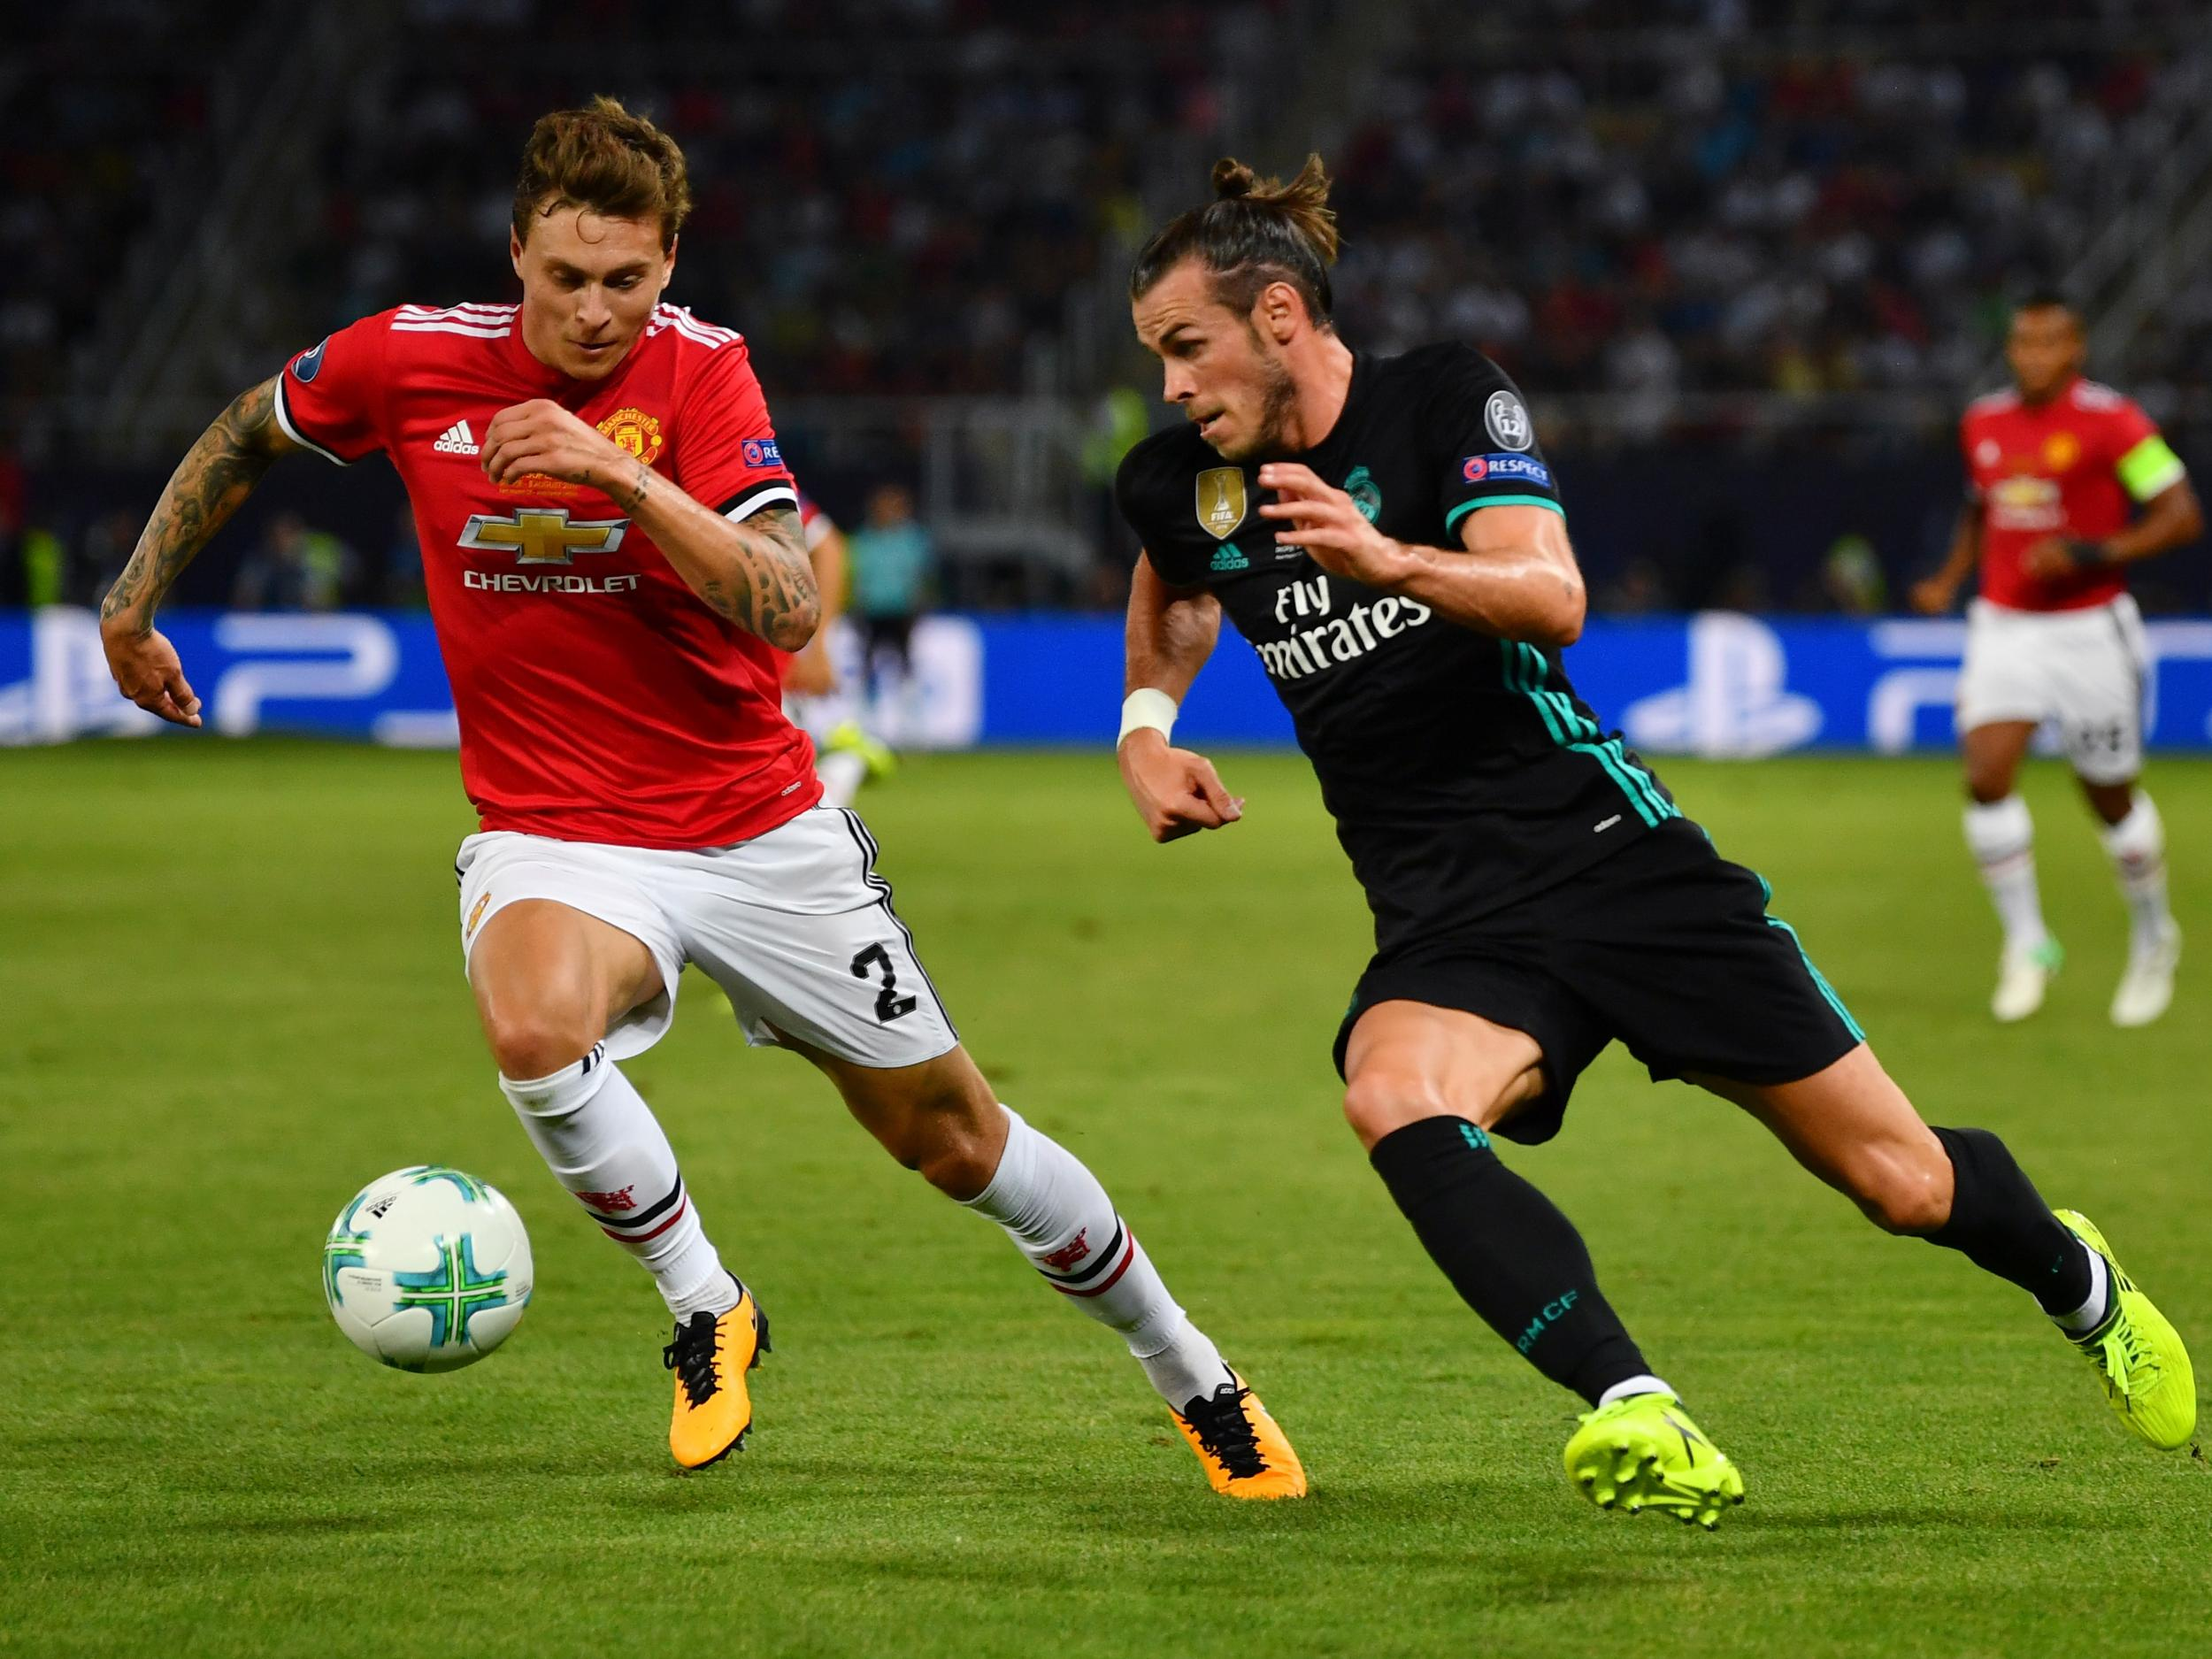 efebc85bb19 Real Madrid vs Manchester United player ratings  Isco and Casemiro ...